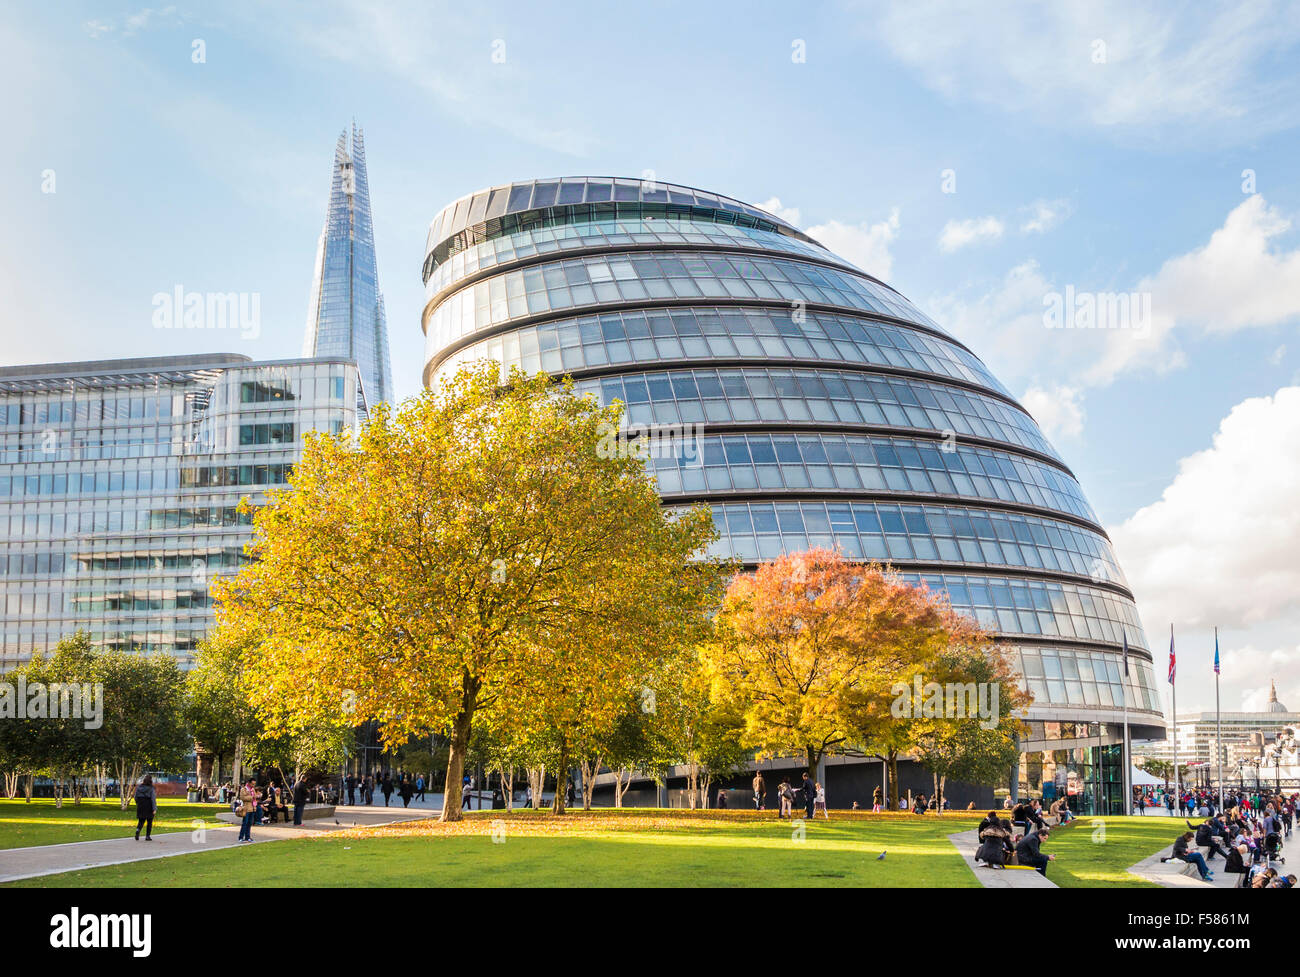 City Hall, More London Riverside, Tooley Street, Southwark, London SE1, headquarters of the Greater London Authority - Stock Image